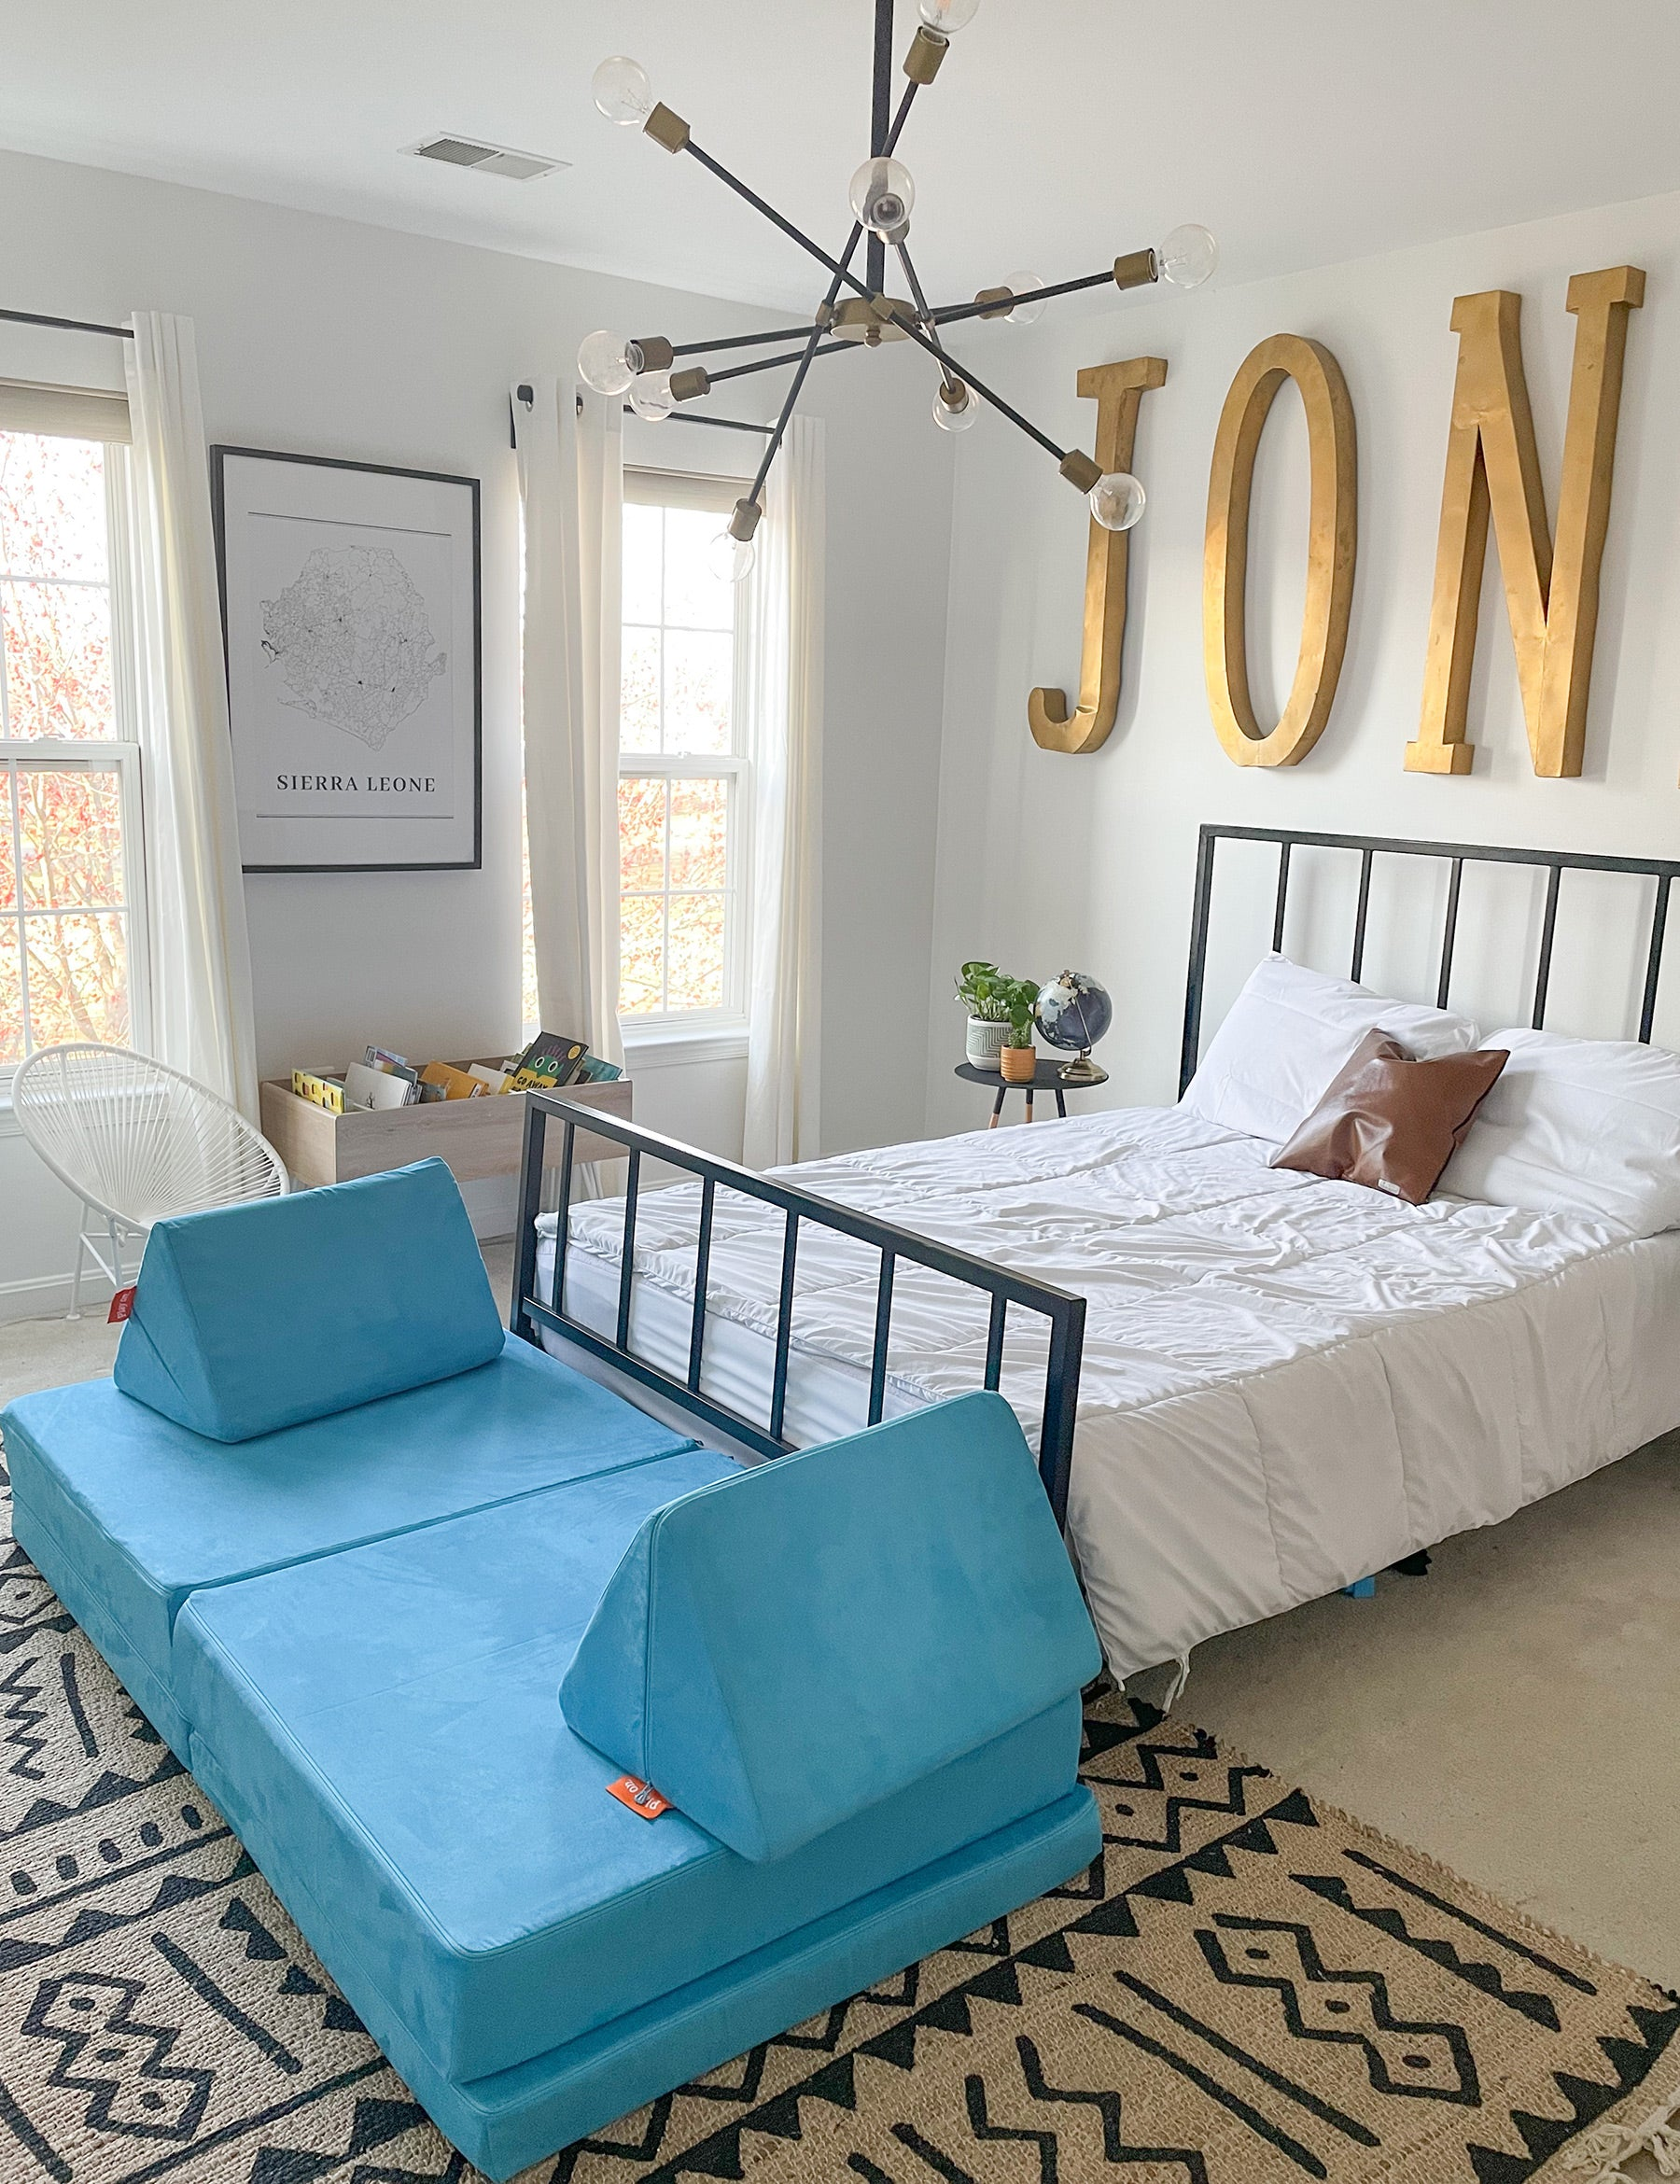 Bright, aquamarine-toned Nugget couch at the foot of a bed in a well-lit, white-walled bedroom with gold accents